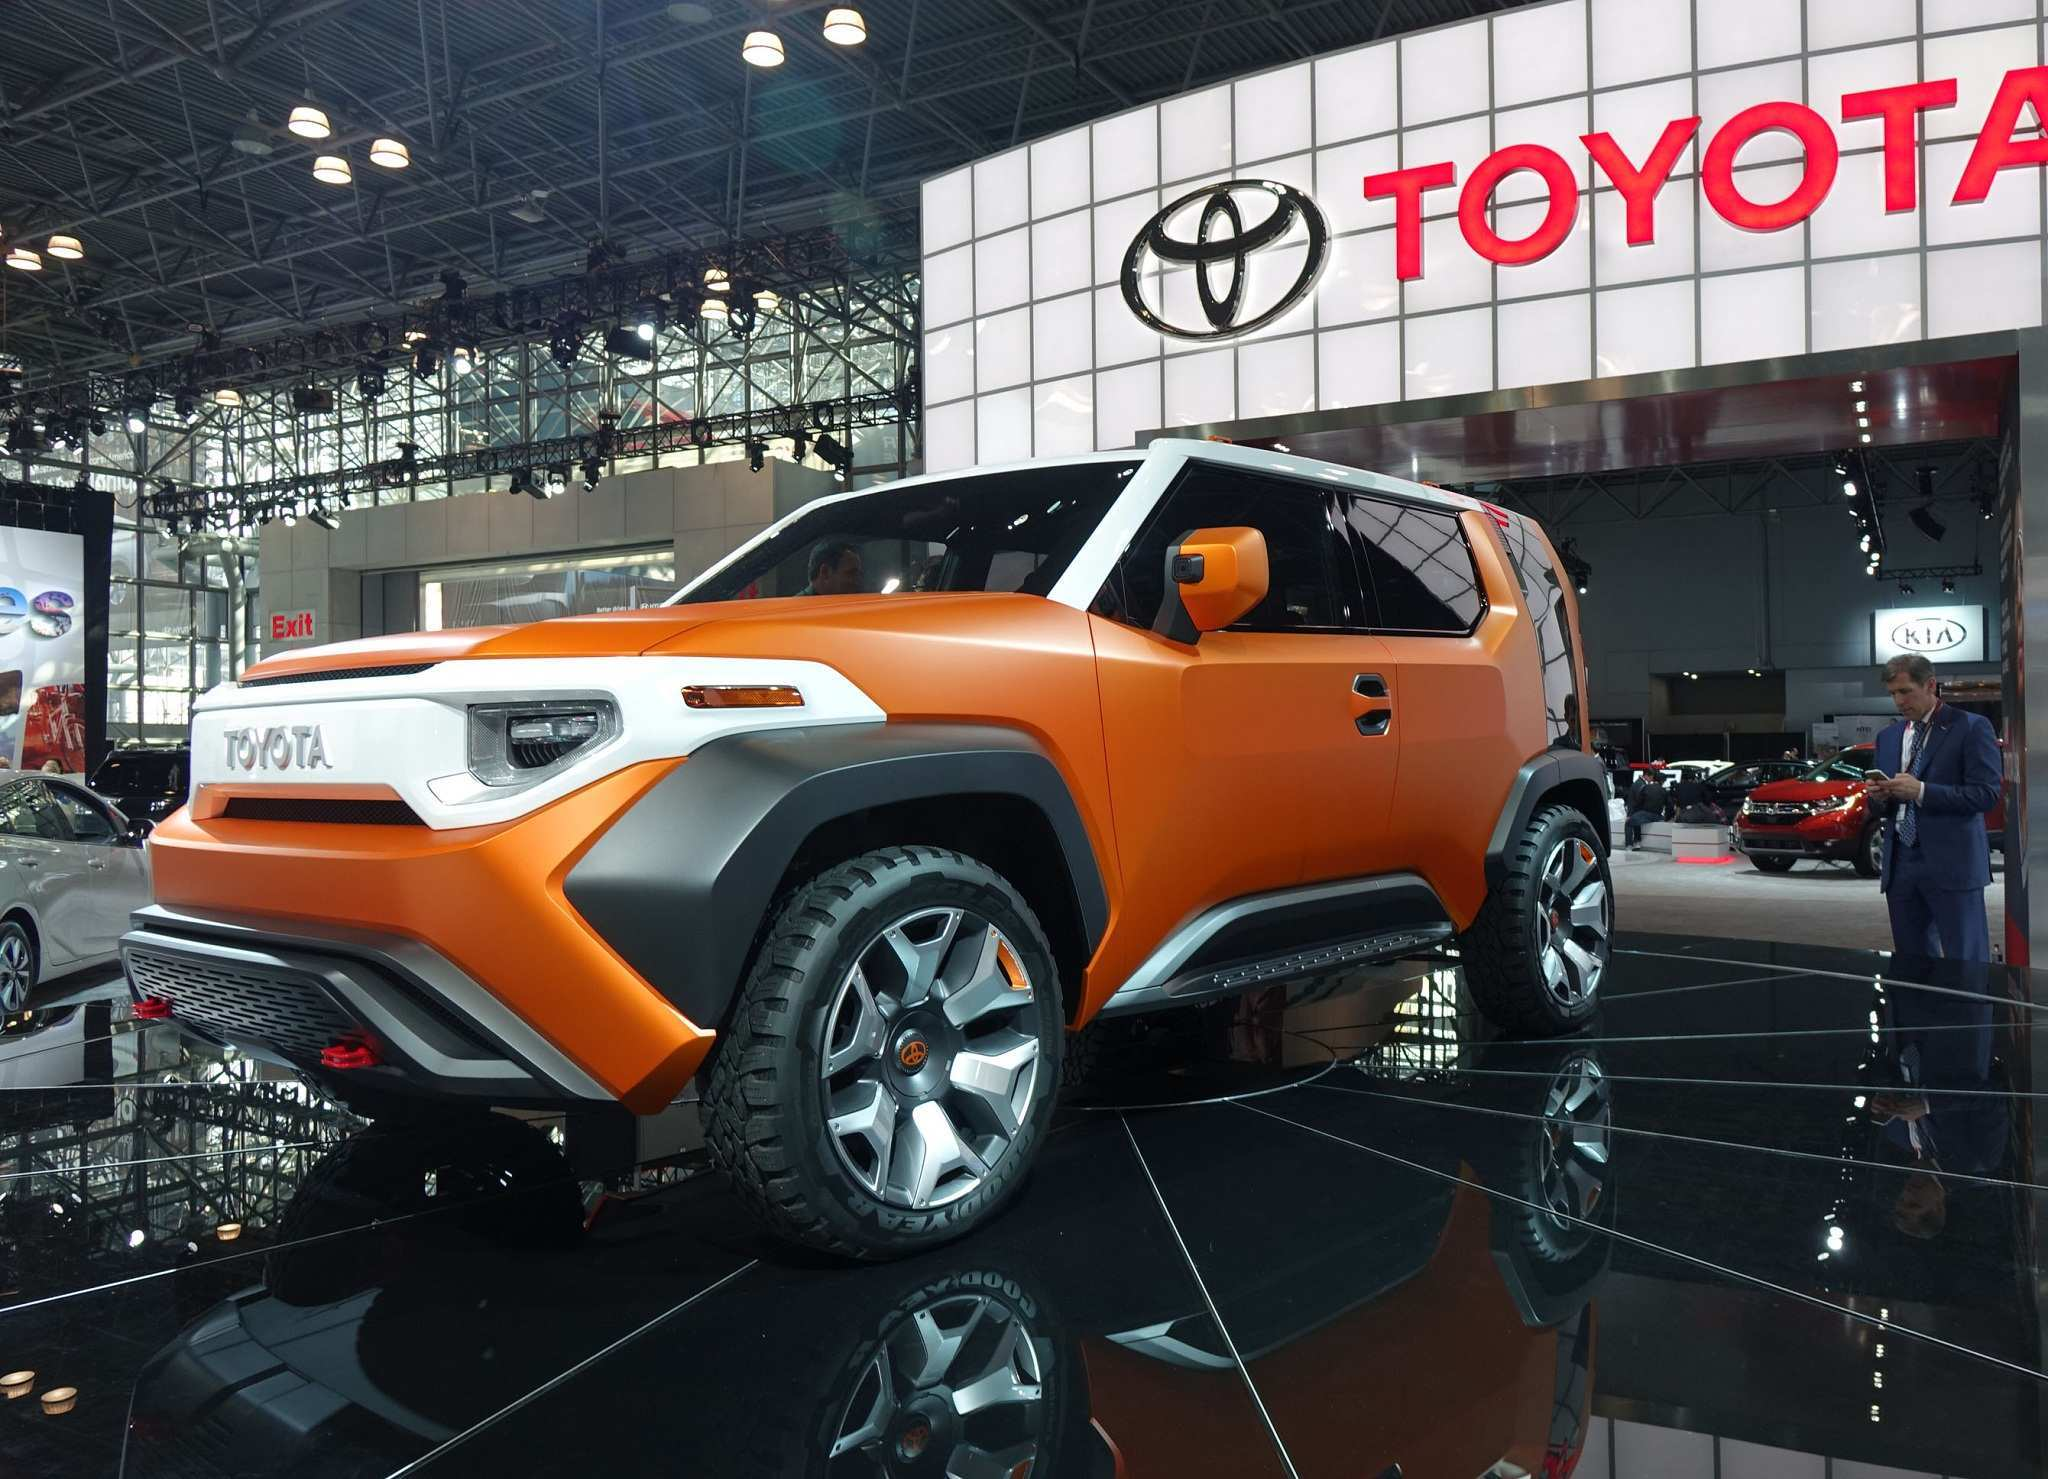 72 New Toyota Fj Cruiser 2020 Price And Release Date